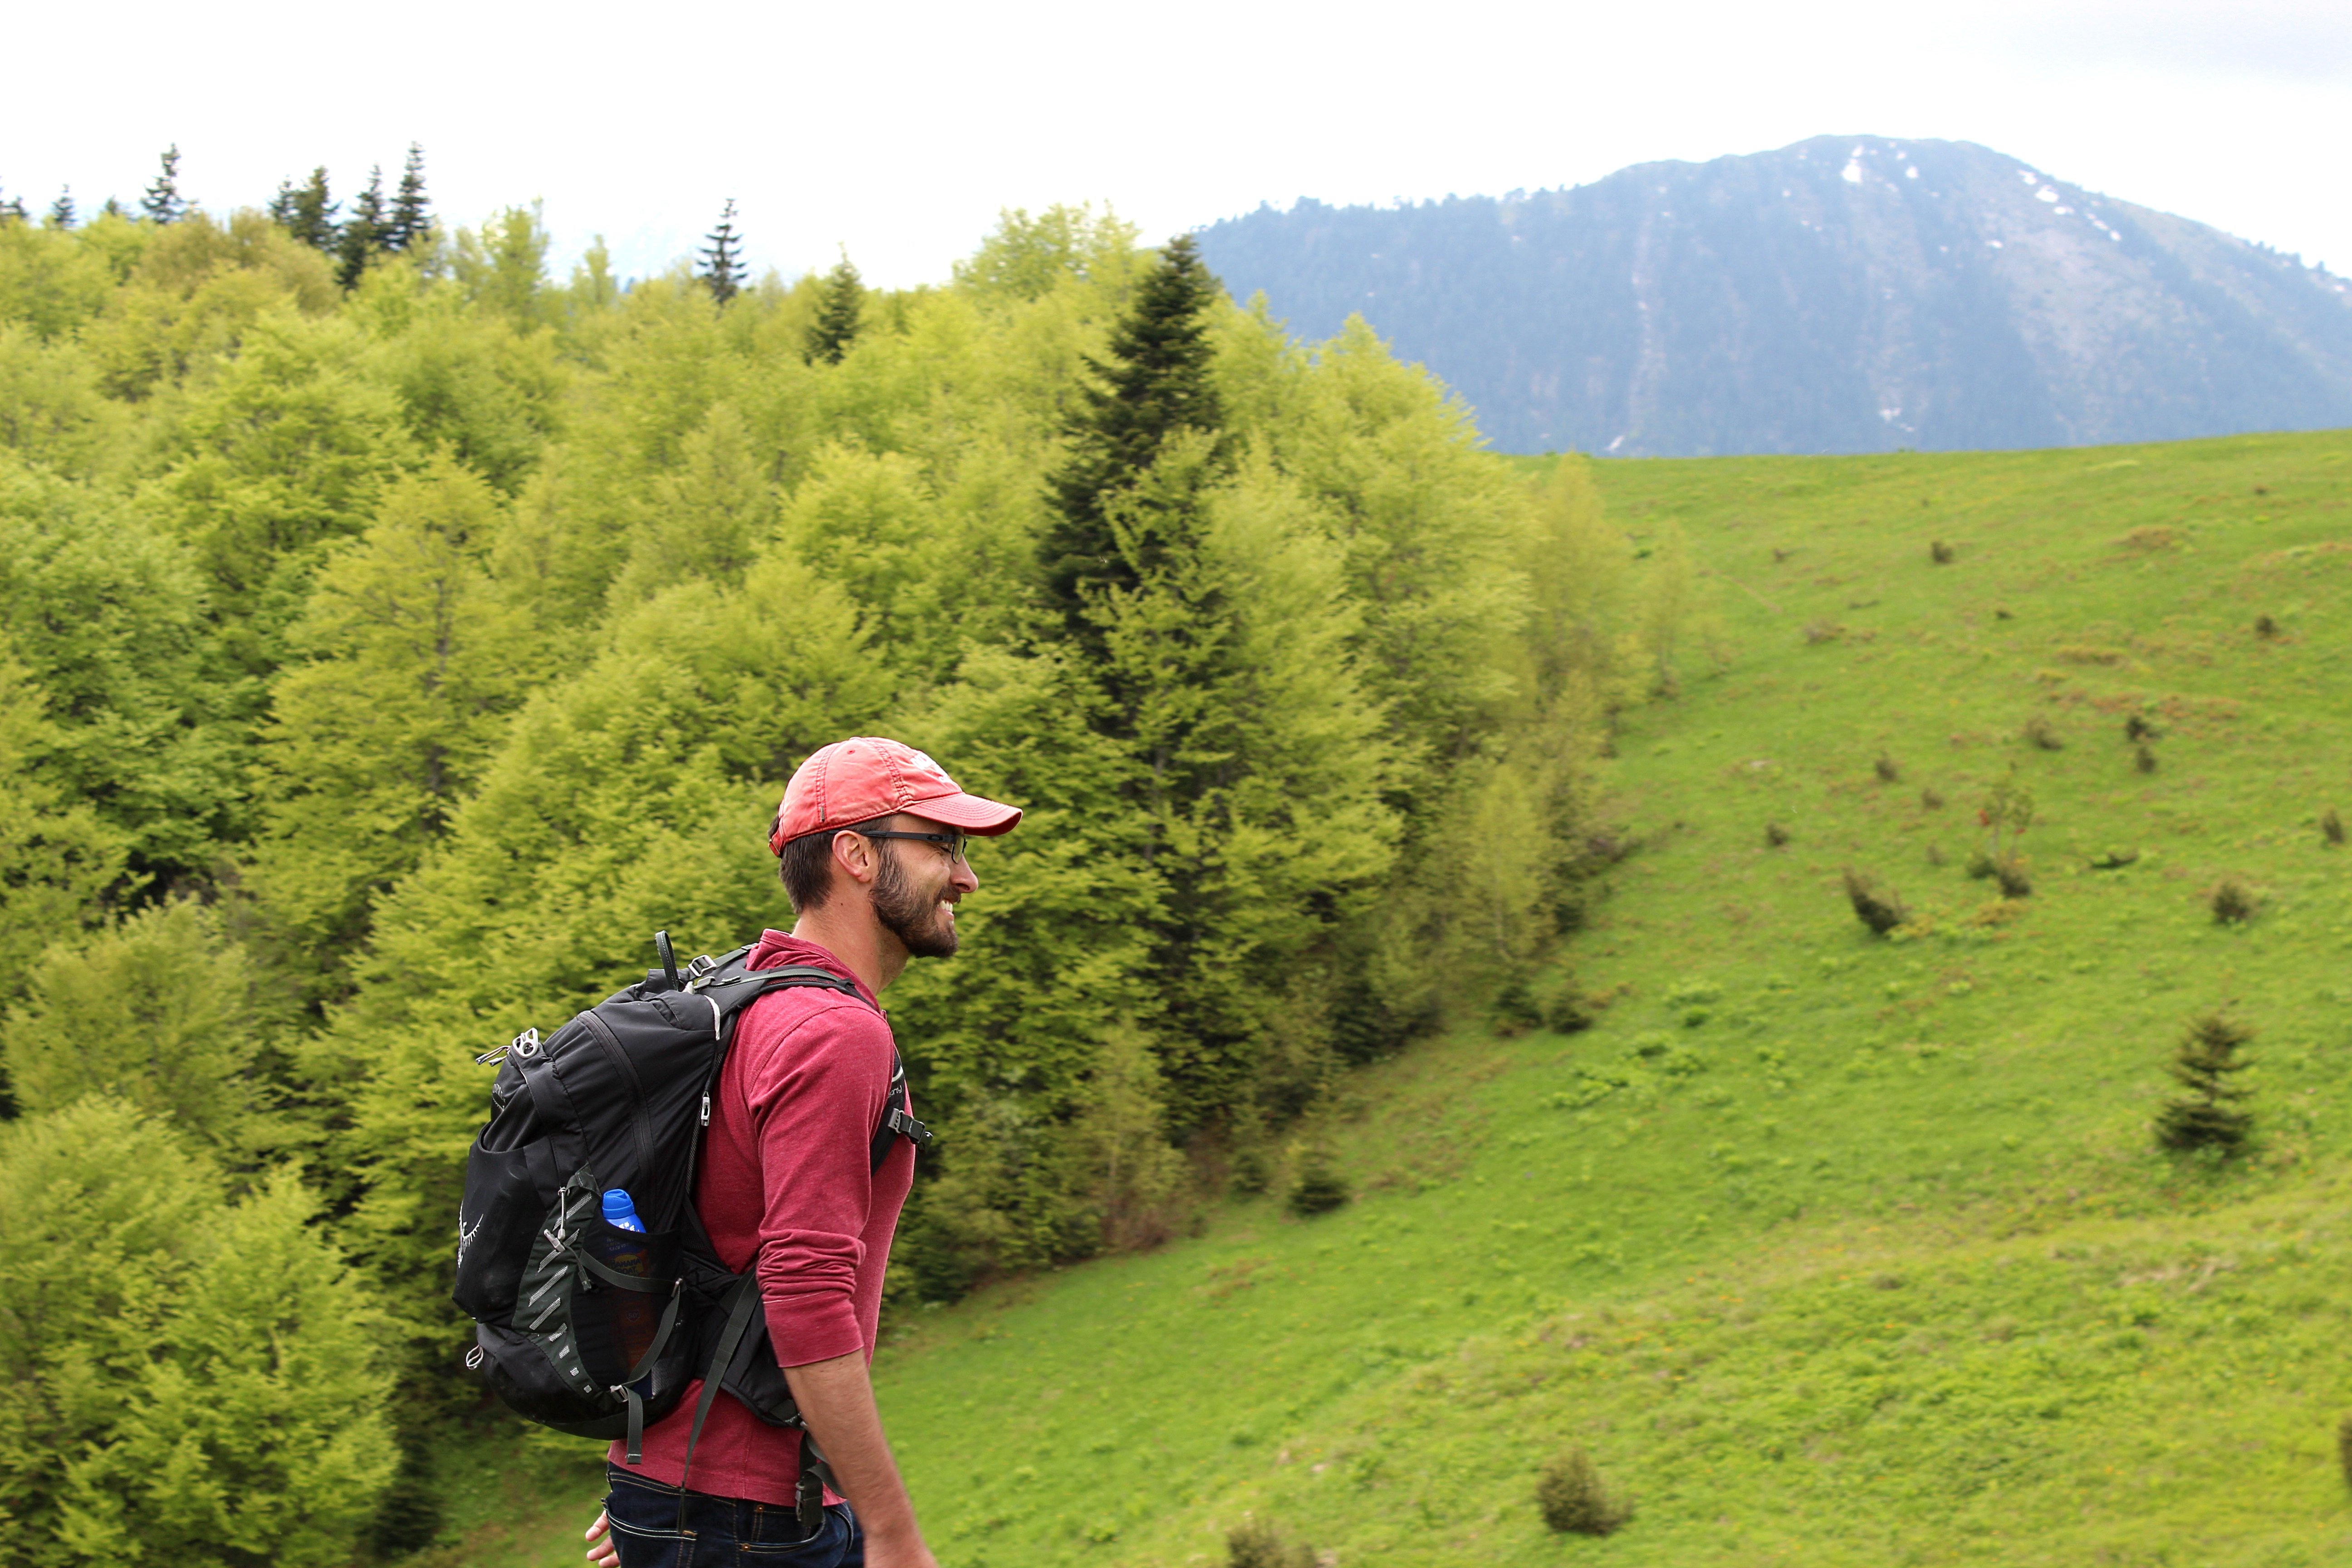 UConn graduate student in archaeology Elic Weitzel walking in the mountains of Kosovo. (Photo by Dukagjin Mehmetaj).